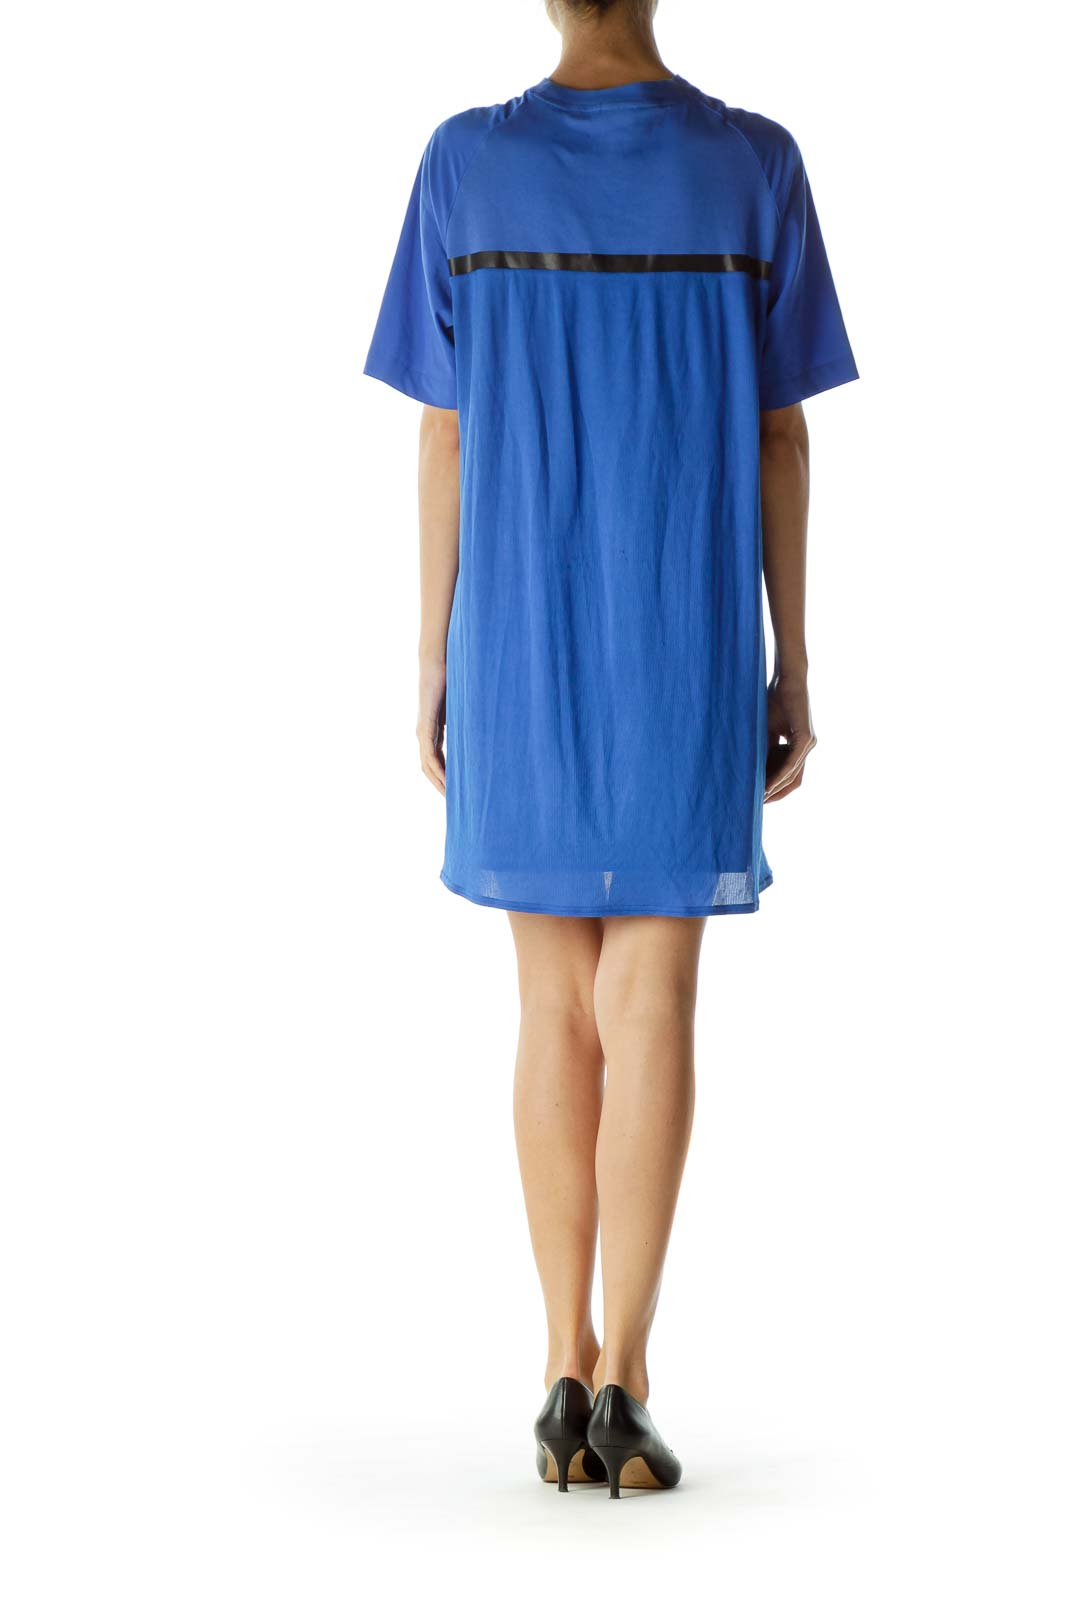 Blue Pocketed Sports Dress with Slip